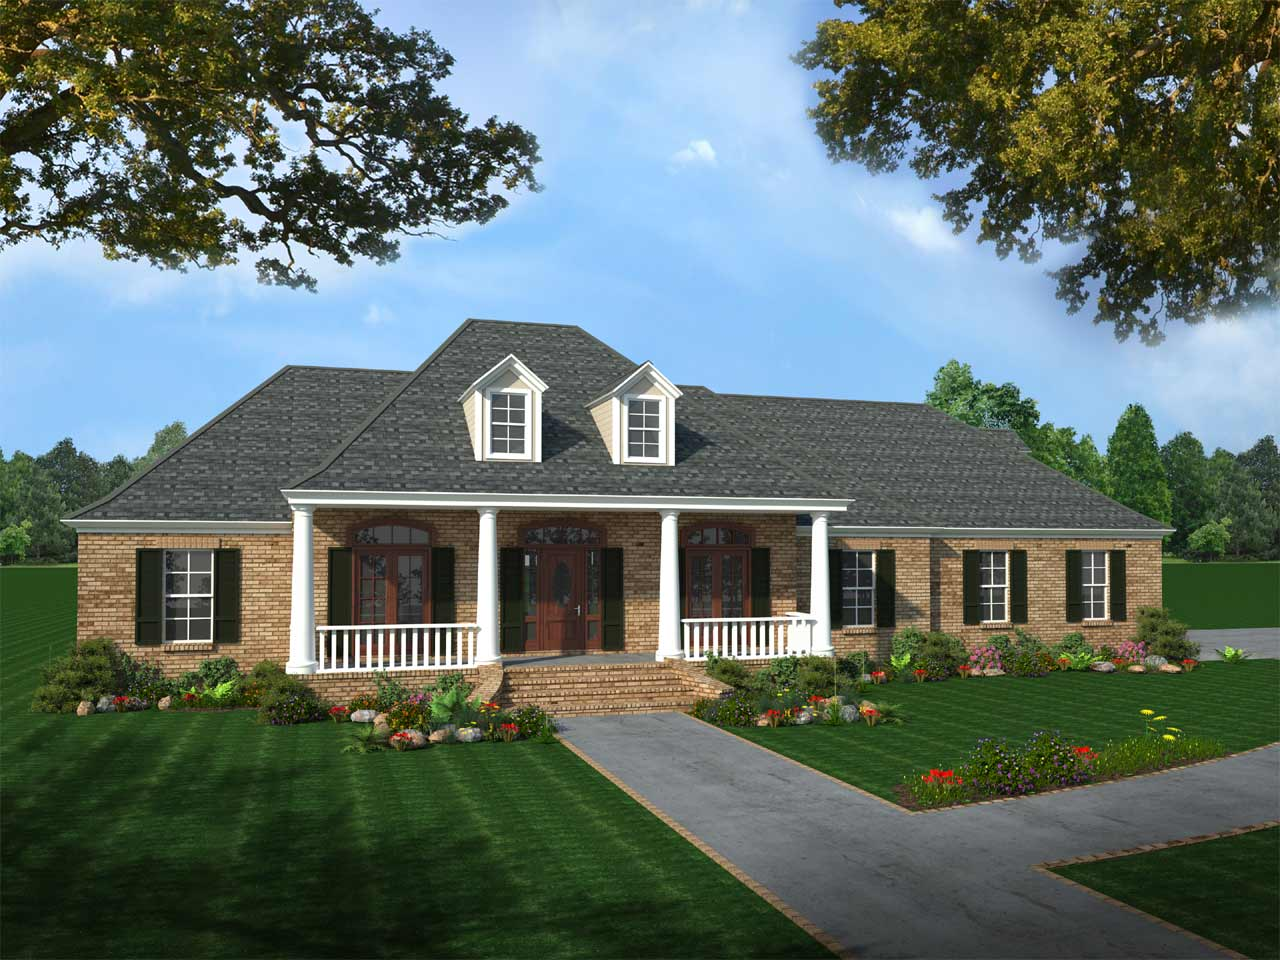 Southern Style House Plans Plan: 2-244